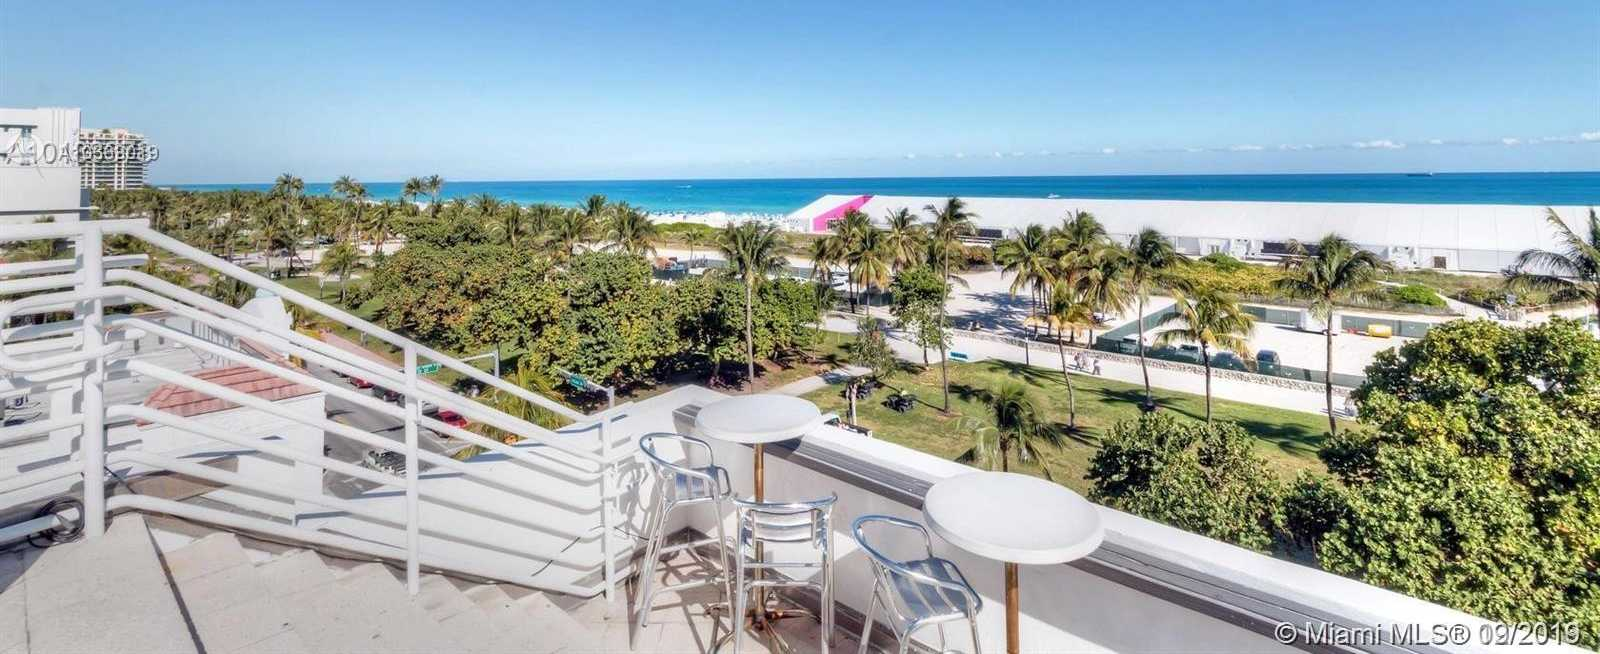 $379,000 - 1Br/1Ba -  for Sale in The Strand On Ocean Drive, Miami Beach